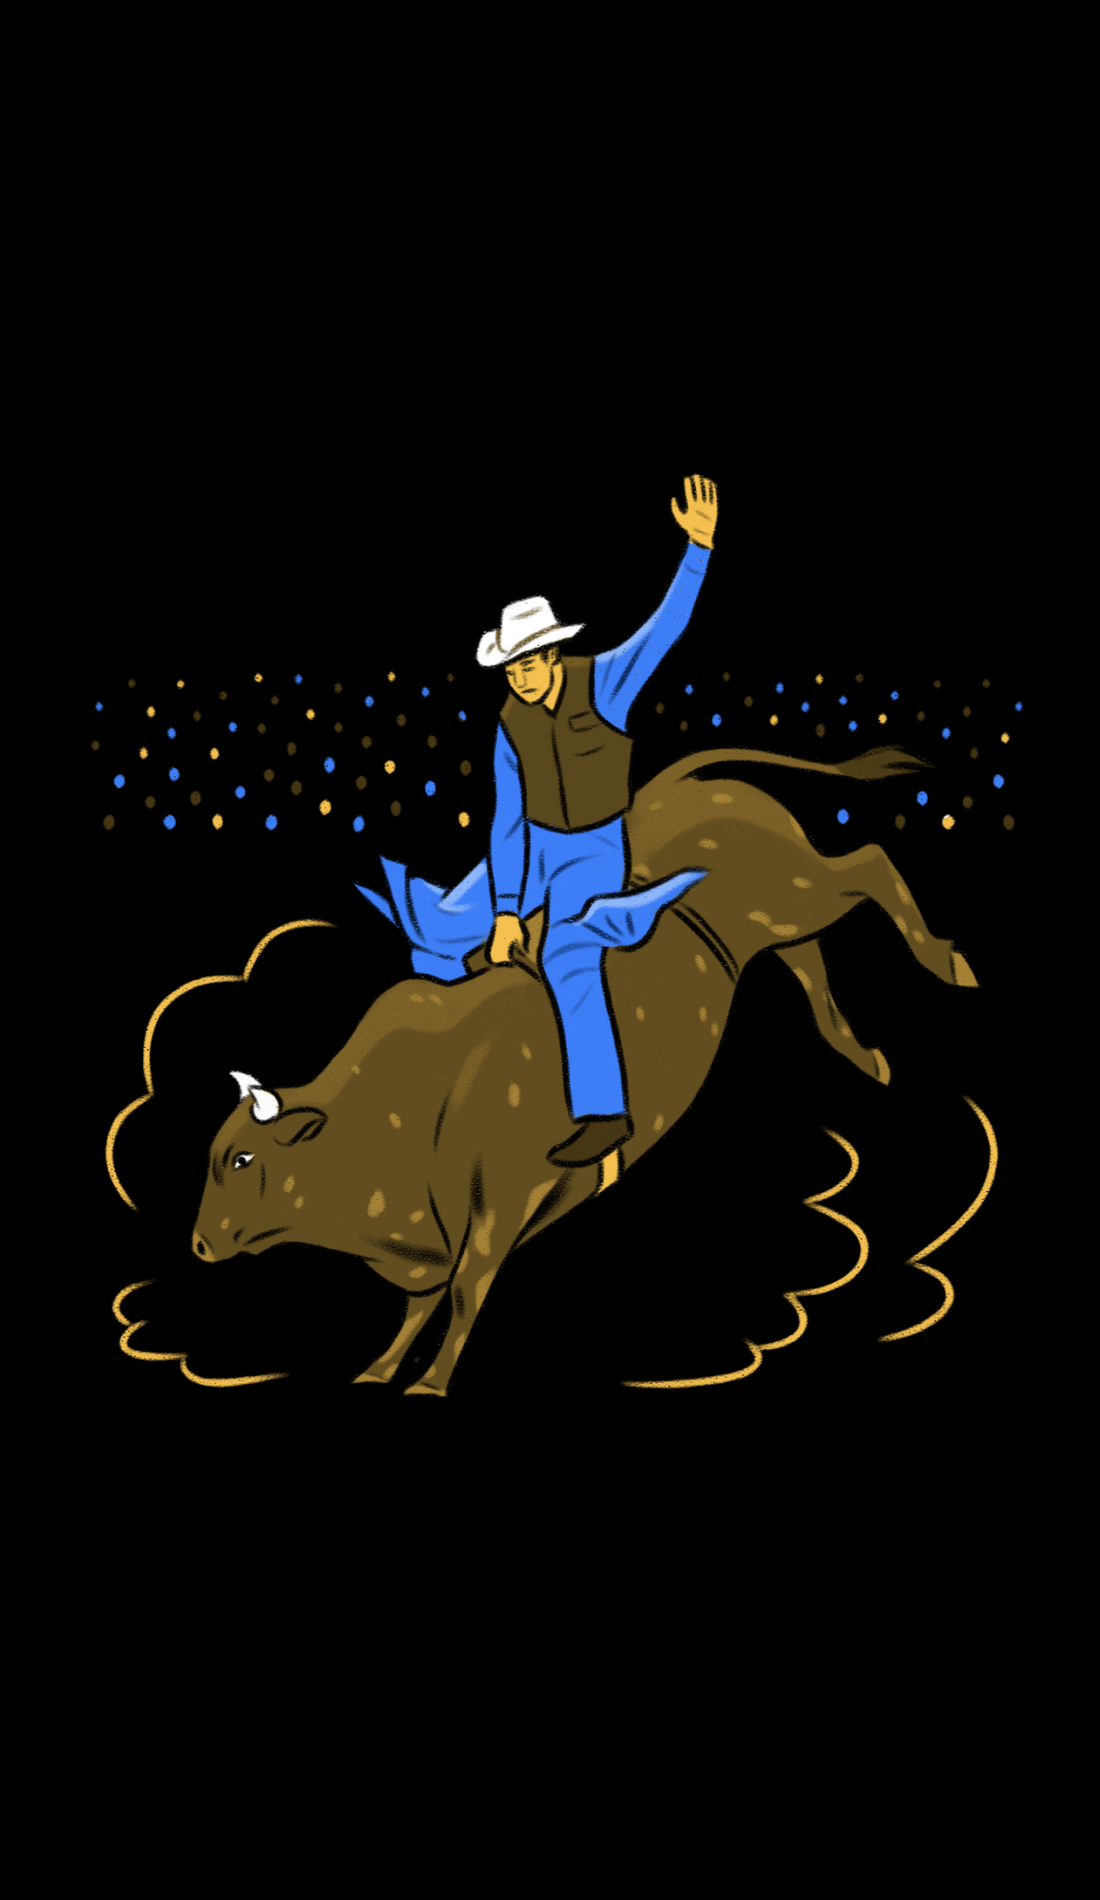 A PBR: Professional Bull Riders live event